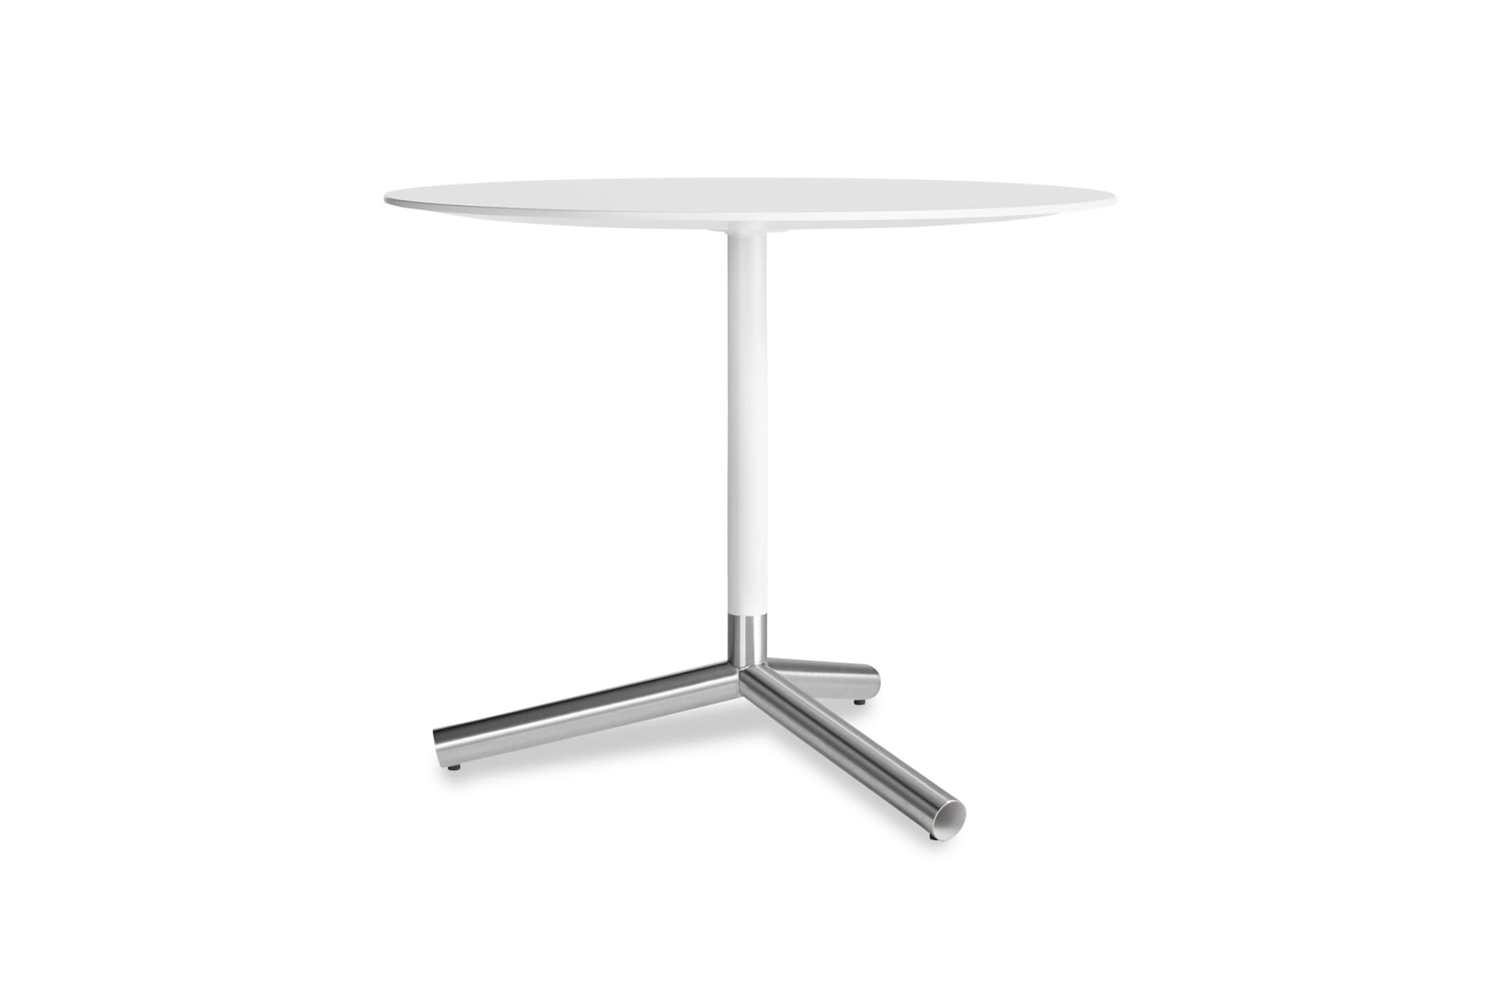 The Blu Dot Sprout 36 Inch Cafe Table, shown in White, is $899 at Blu Dot.